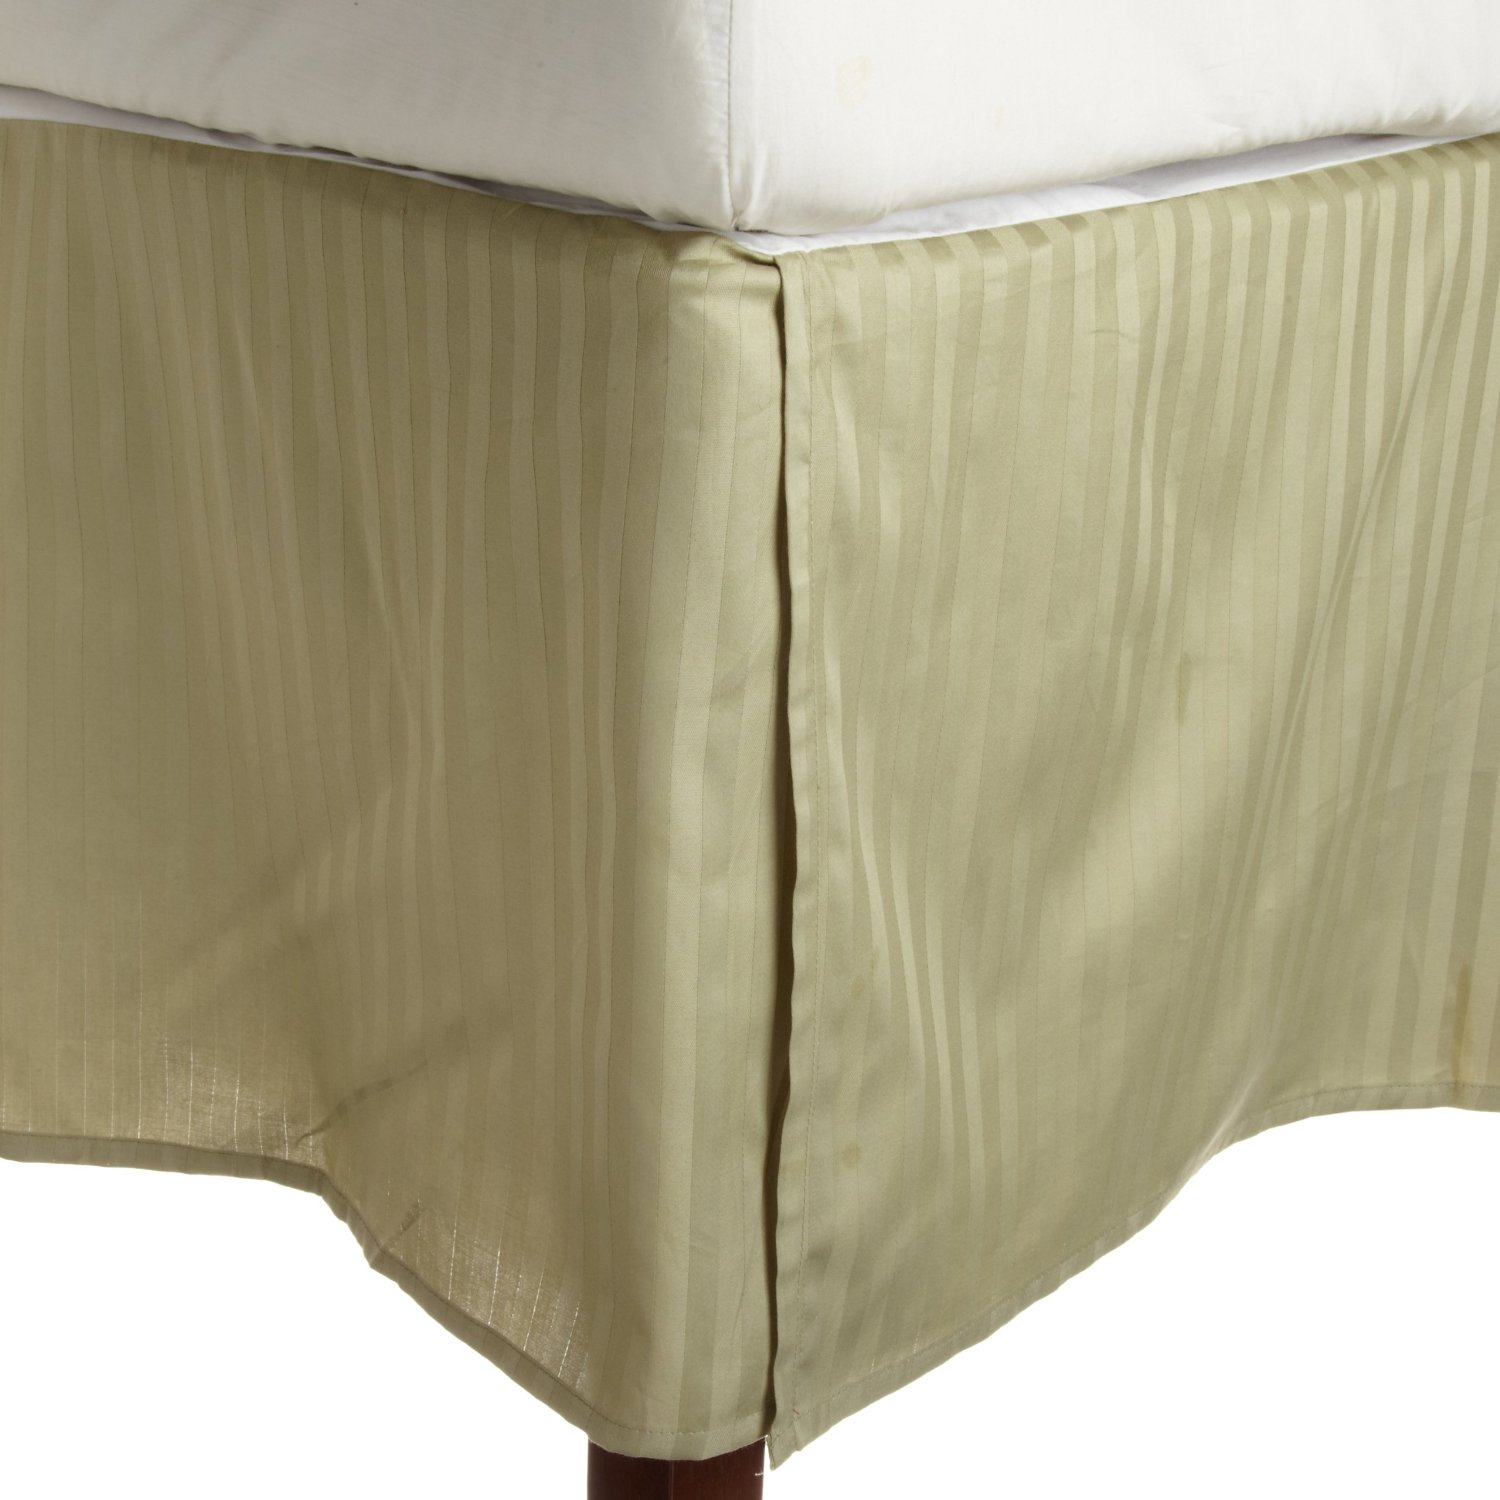 GoLinens: Ultra Soft & Exquisitely Smooth Wrinkle Free Striped Bed Skirts -100 % Brushed Microfiber at Sears.com